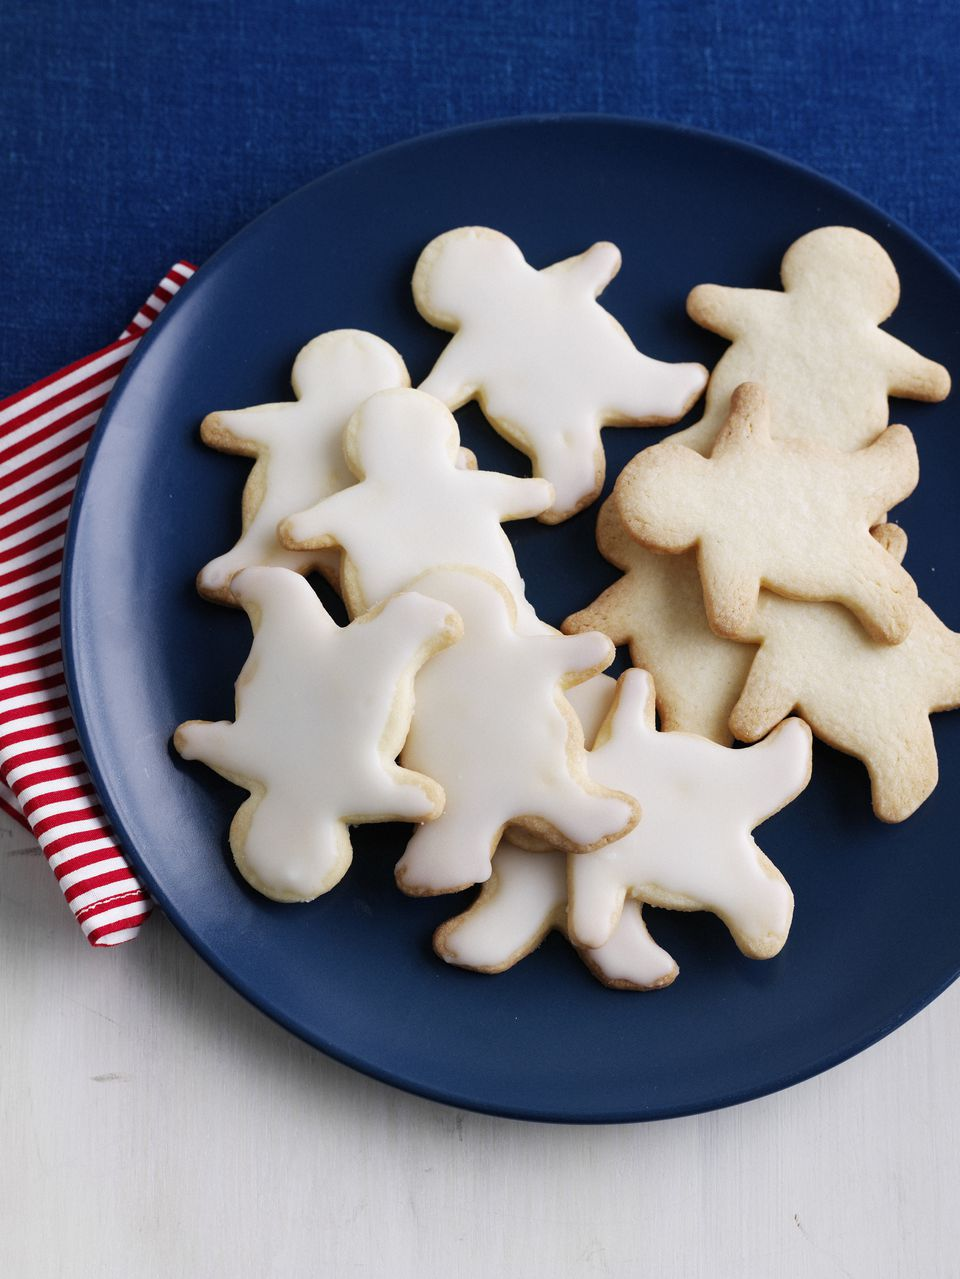 Plate of decorative sugar cookies